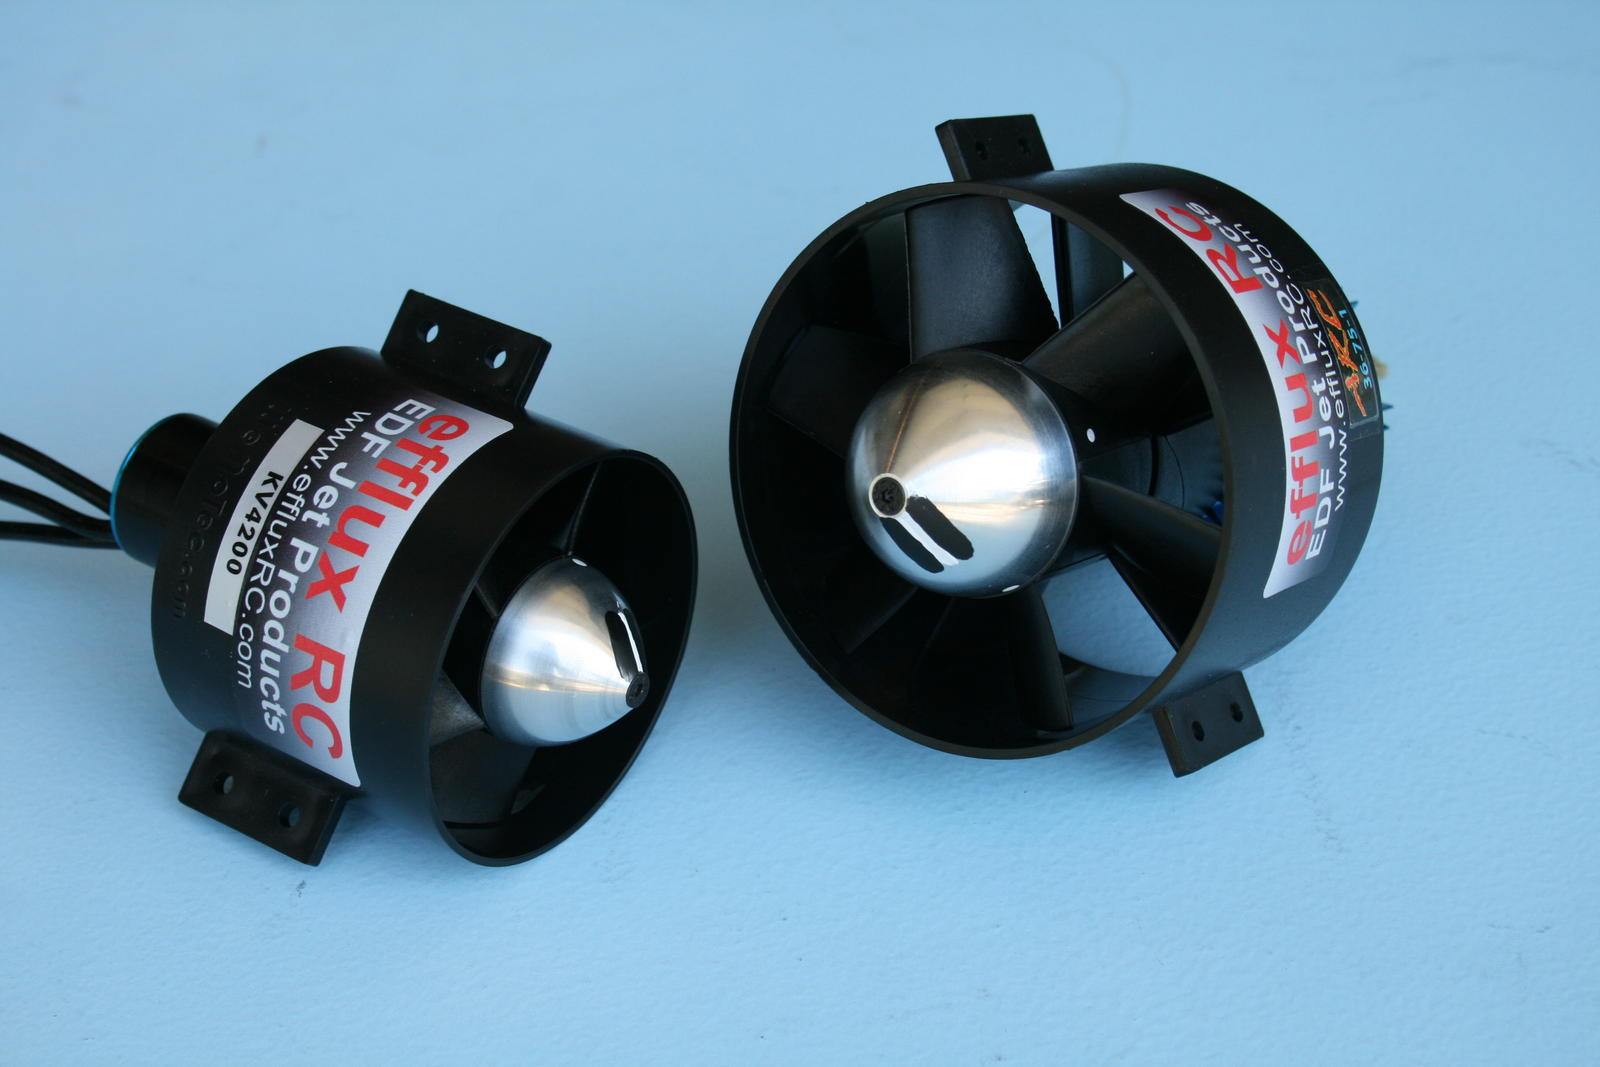 Wemotec 70mm & 90mm Pro fans